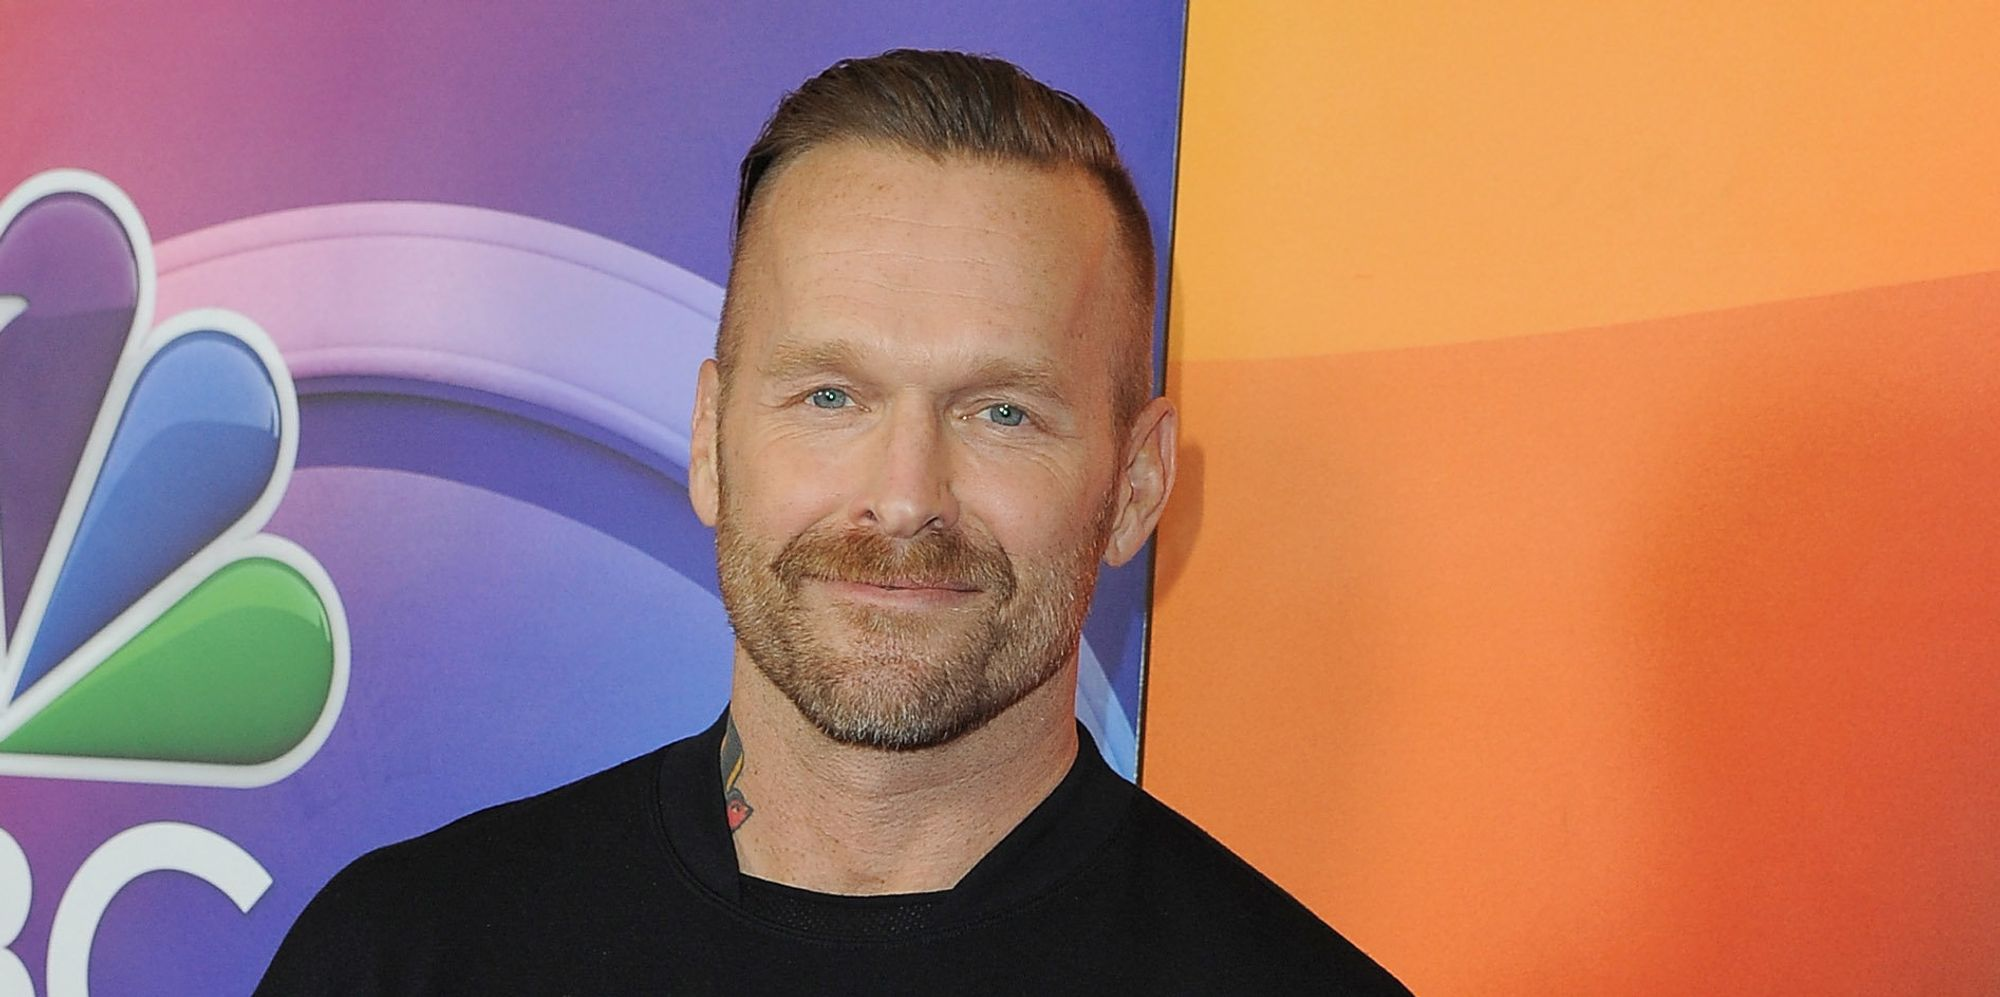 'Biggest Loser' Trainer Explains How He Found 'The Perfect Time' To Come Out Publicly